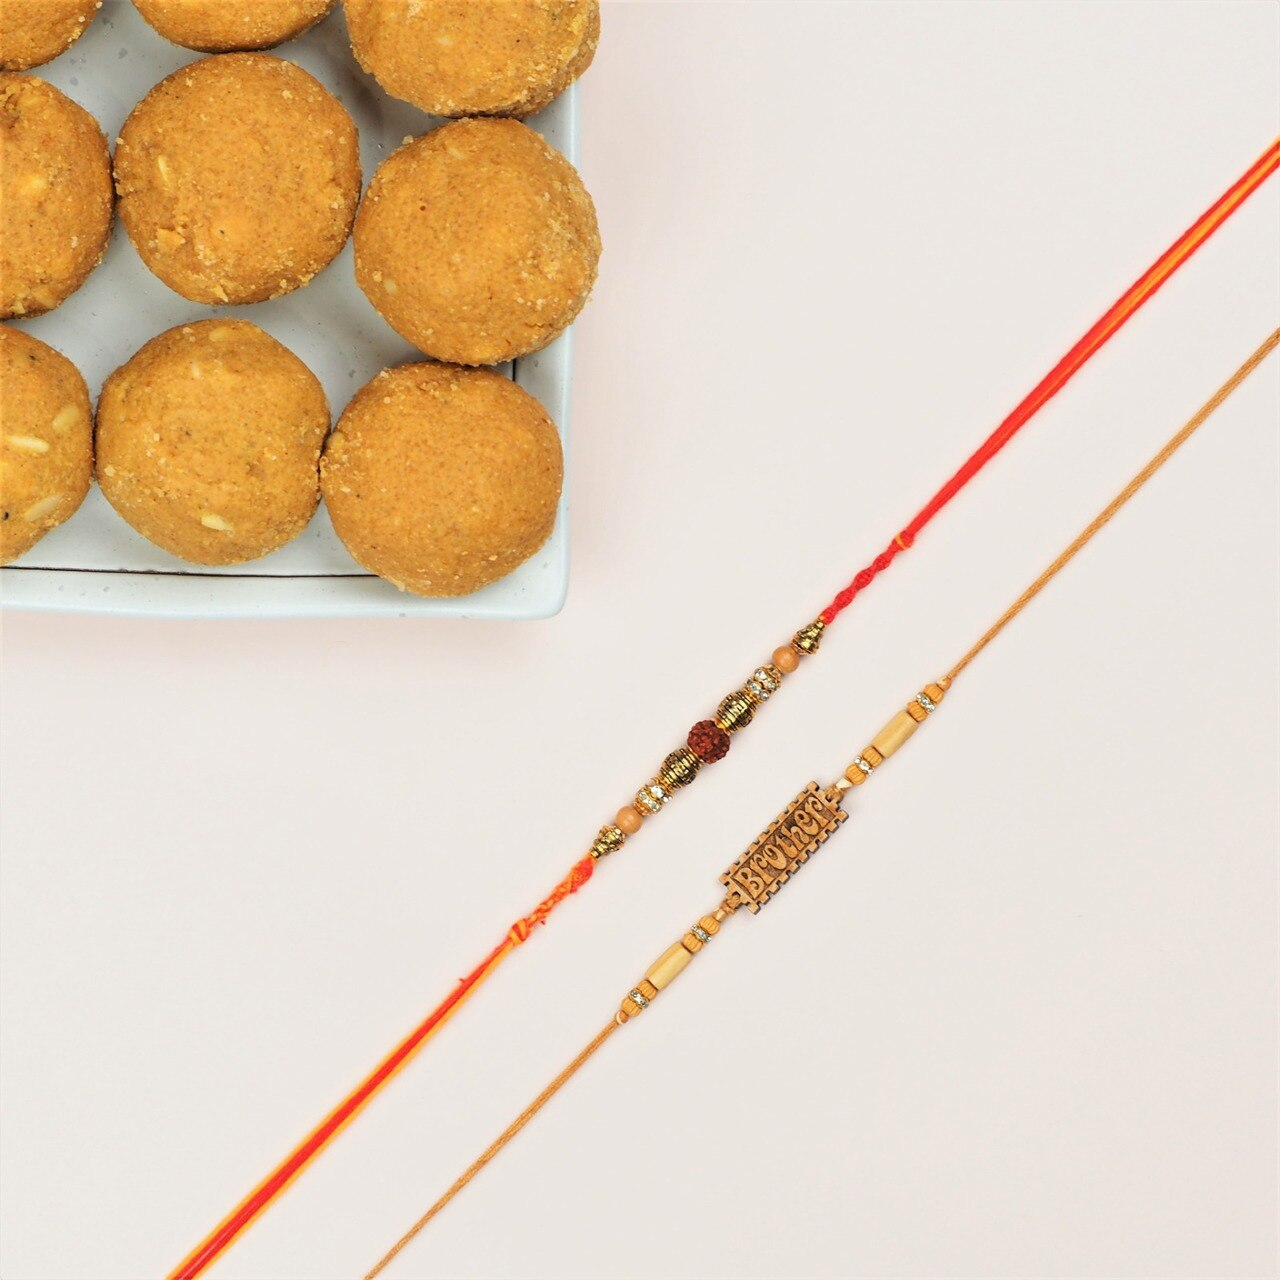 Two Classic Rakhi Set with Besan Laddu - FOR NEW ZEALAND